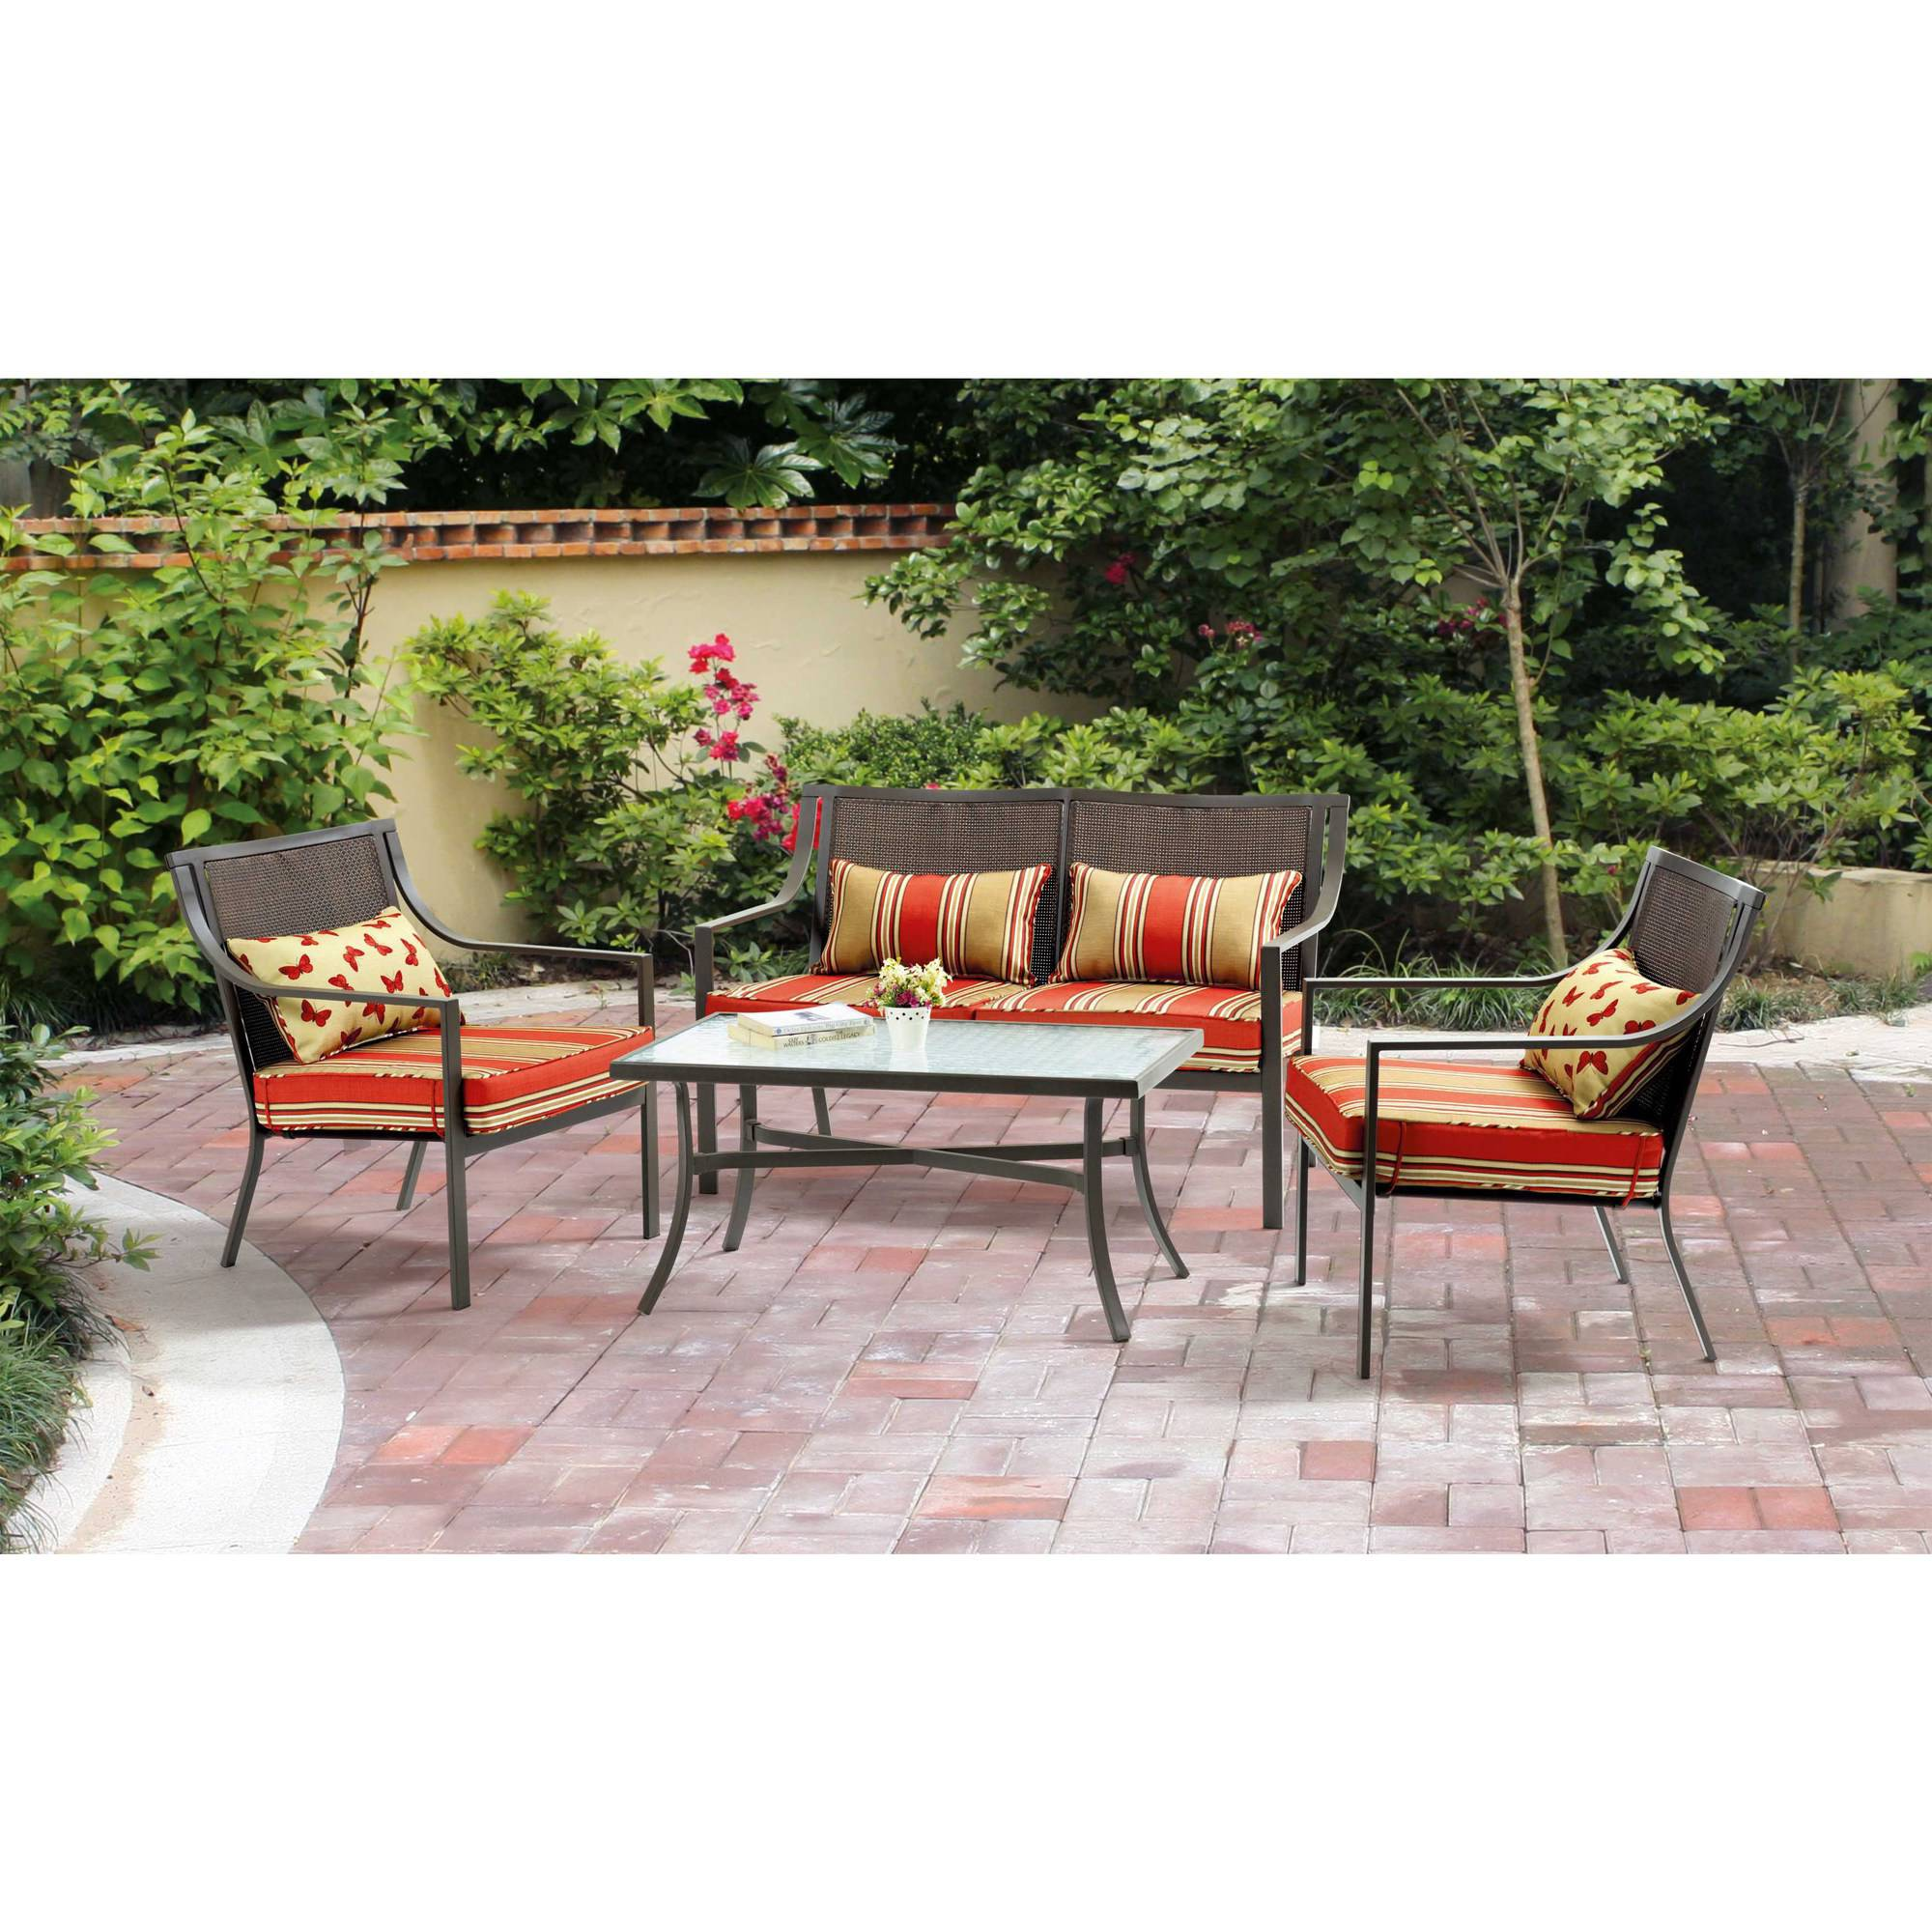 Mainstays Alexandra Square 4-Piece Patio Conversation Set, Red Stripe with Butterflies, Seats 4